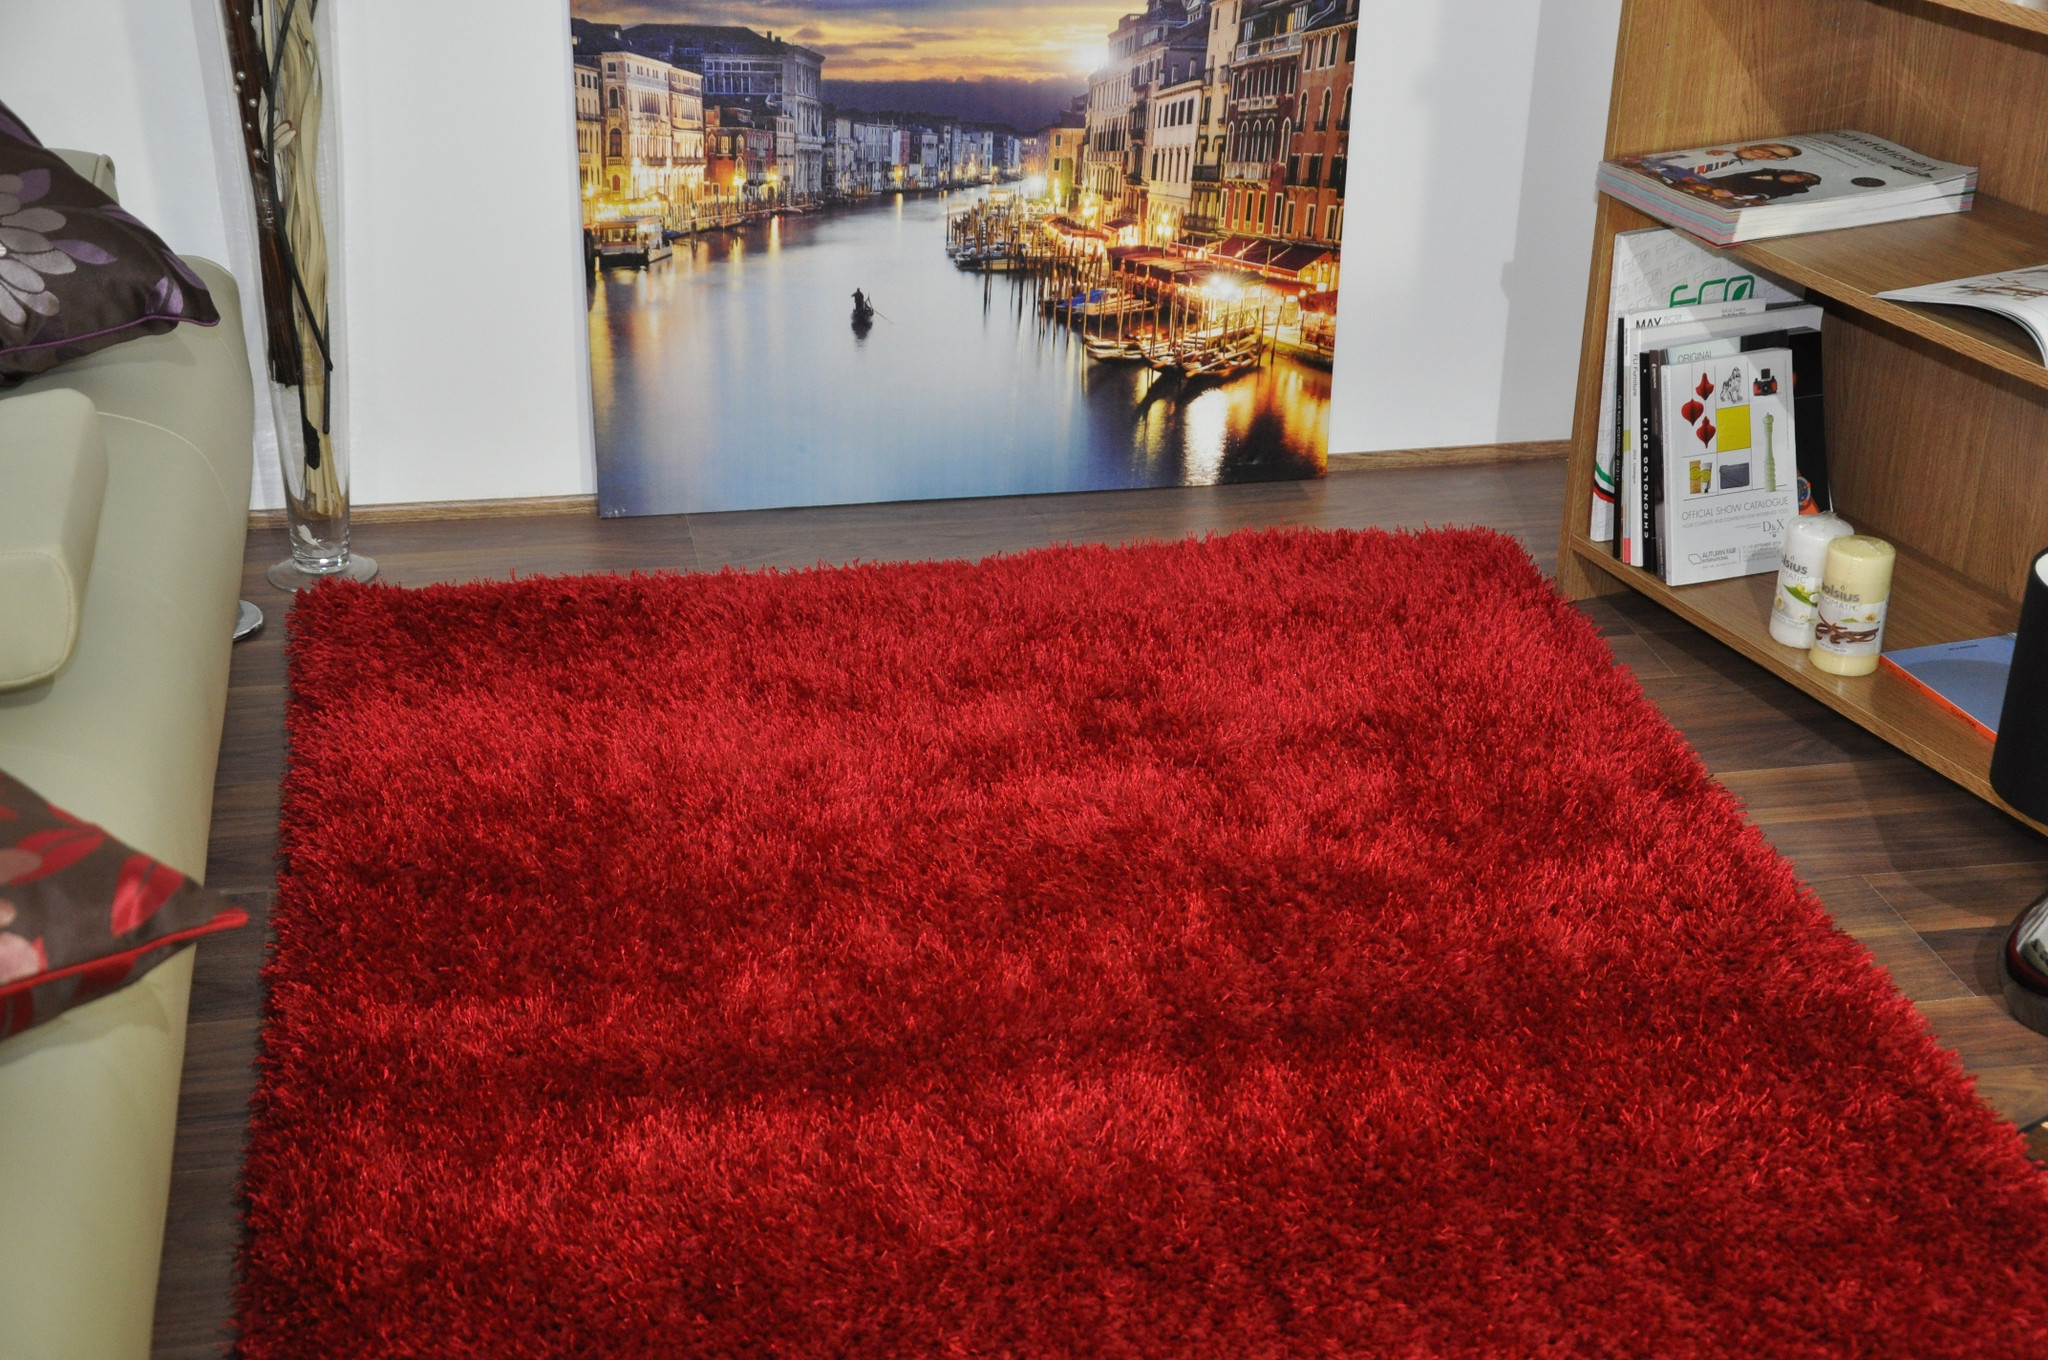 red rugs for living room livingroom:red rug doctor parts area target 8x10 floor runner ft round  bathroom CPREURF